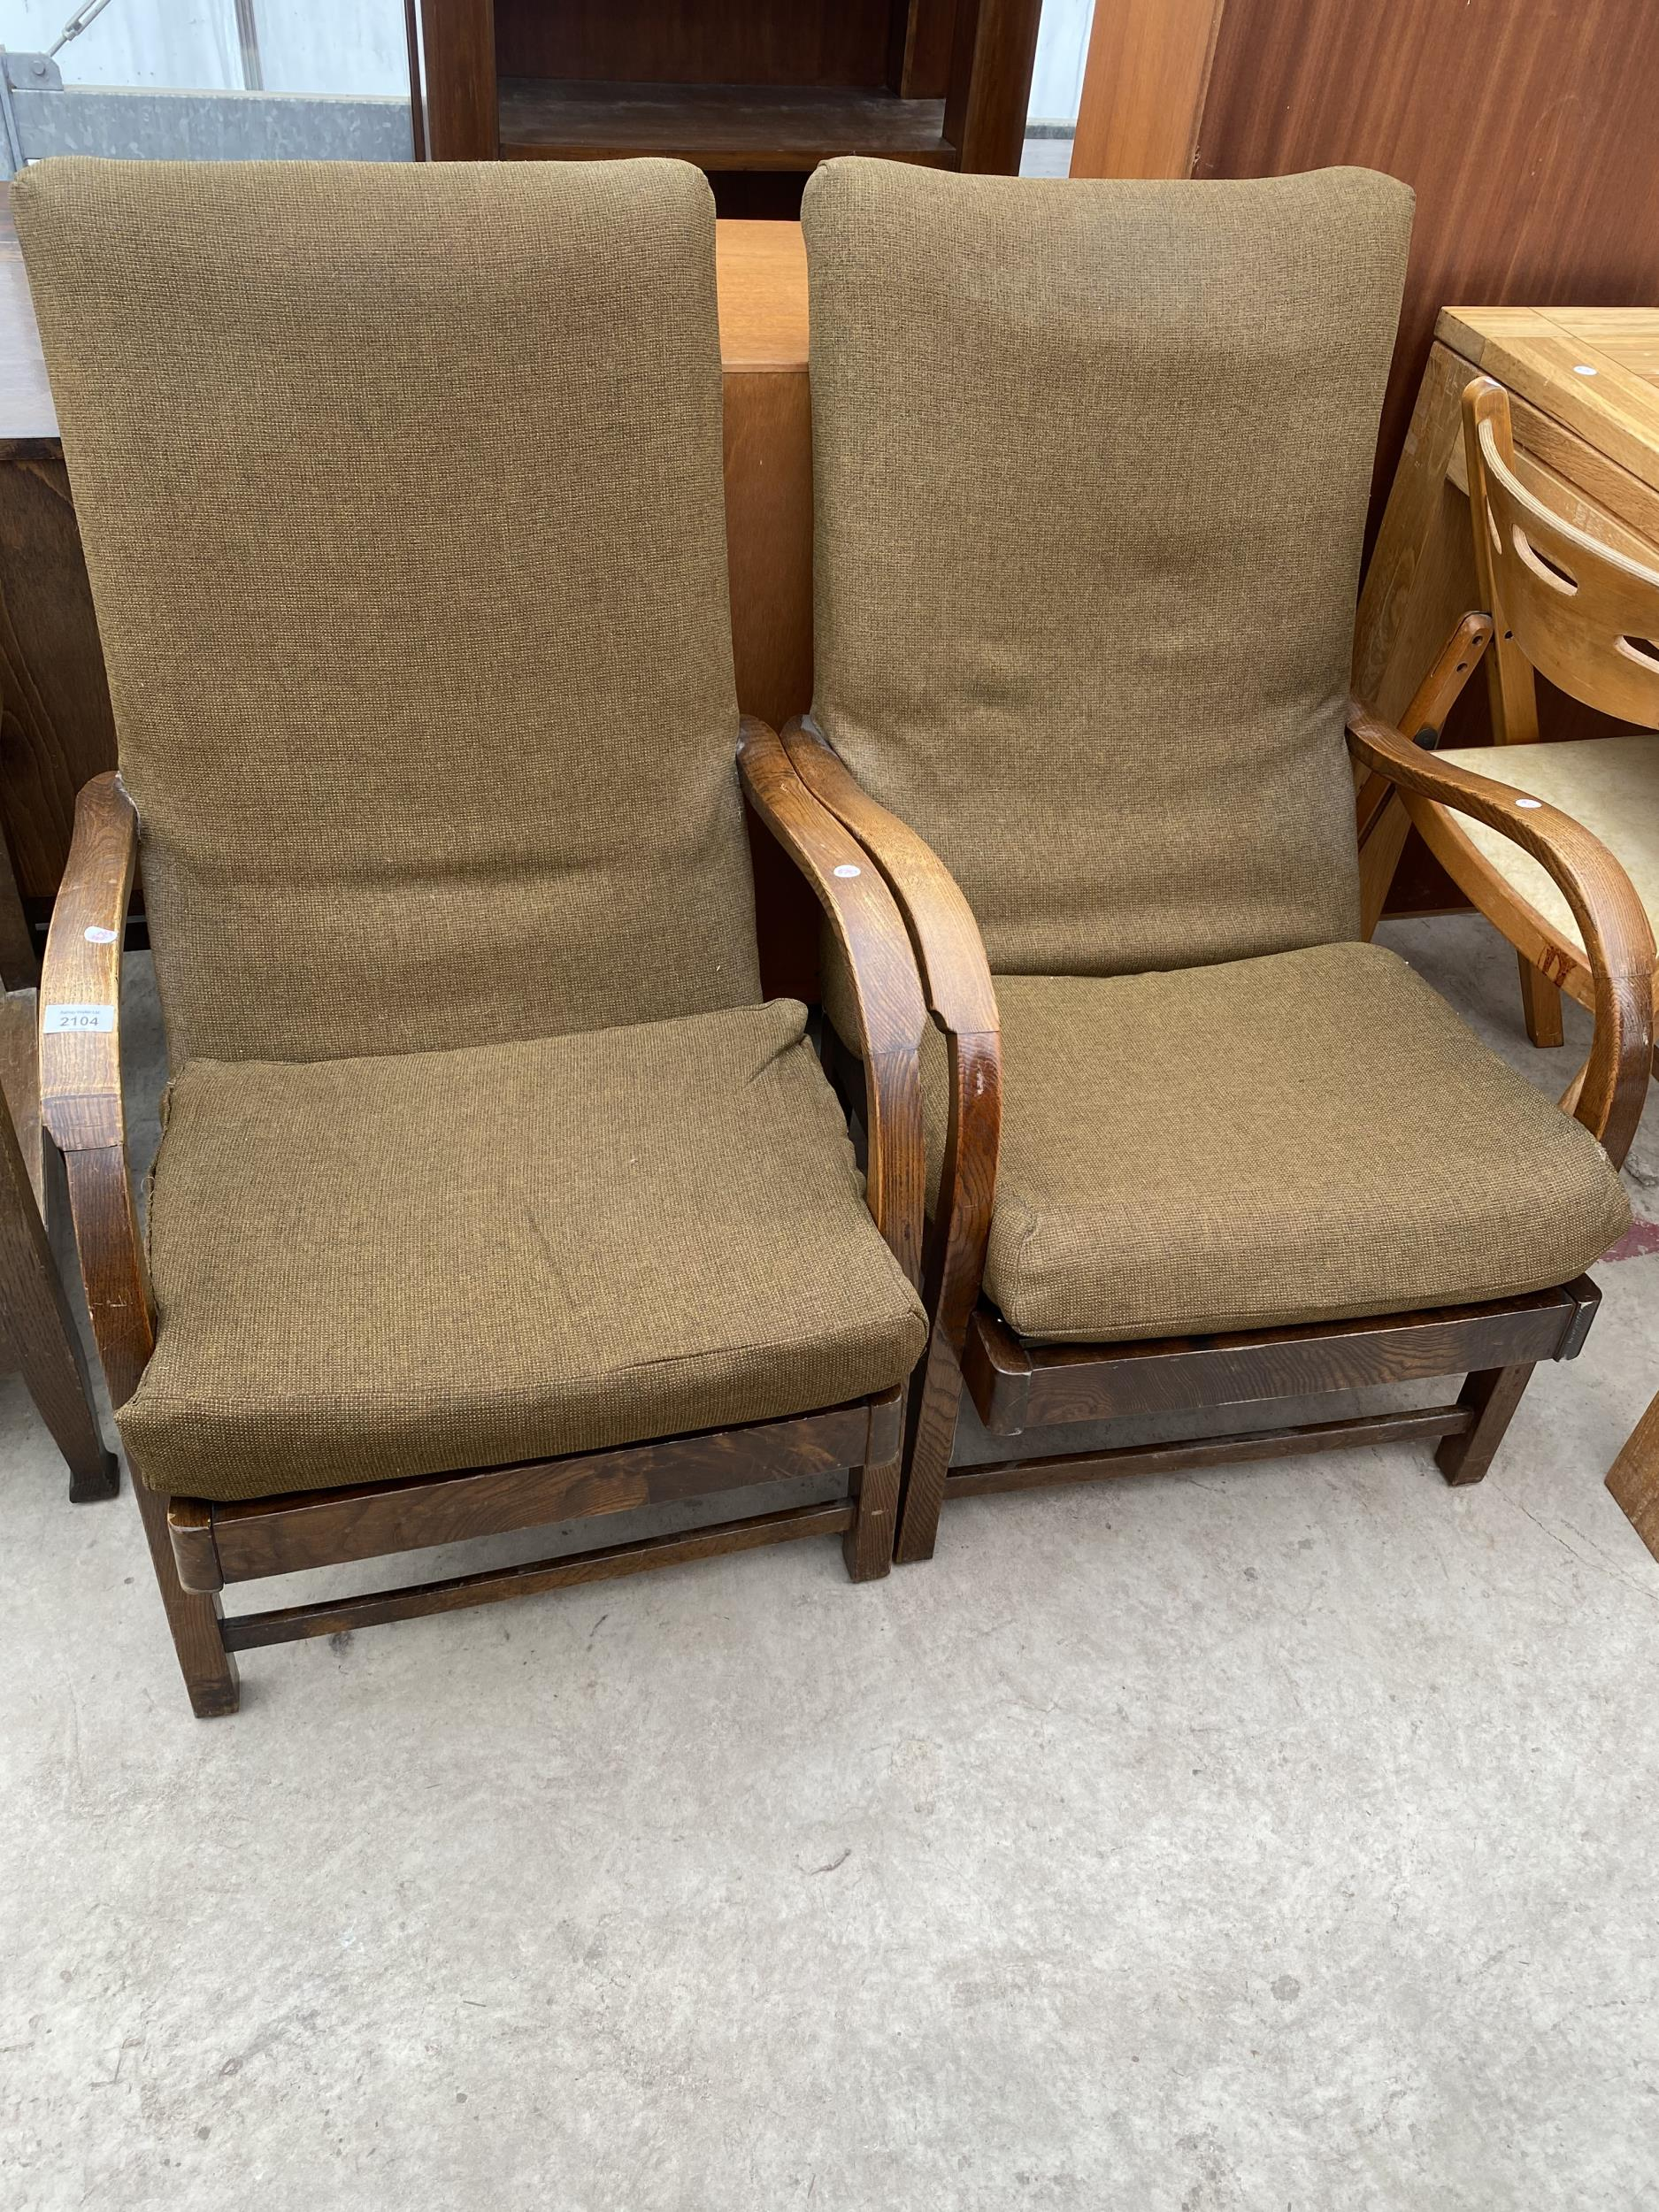 A PAIR OF ART DECO STYLE FIRESIDE CHAIRS